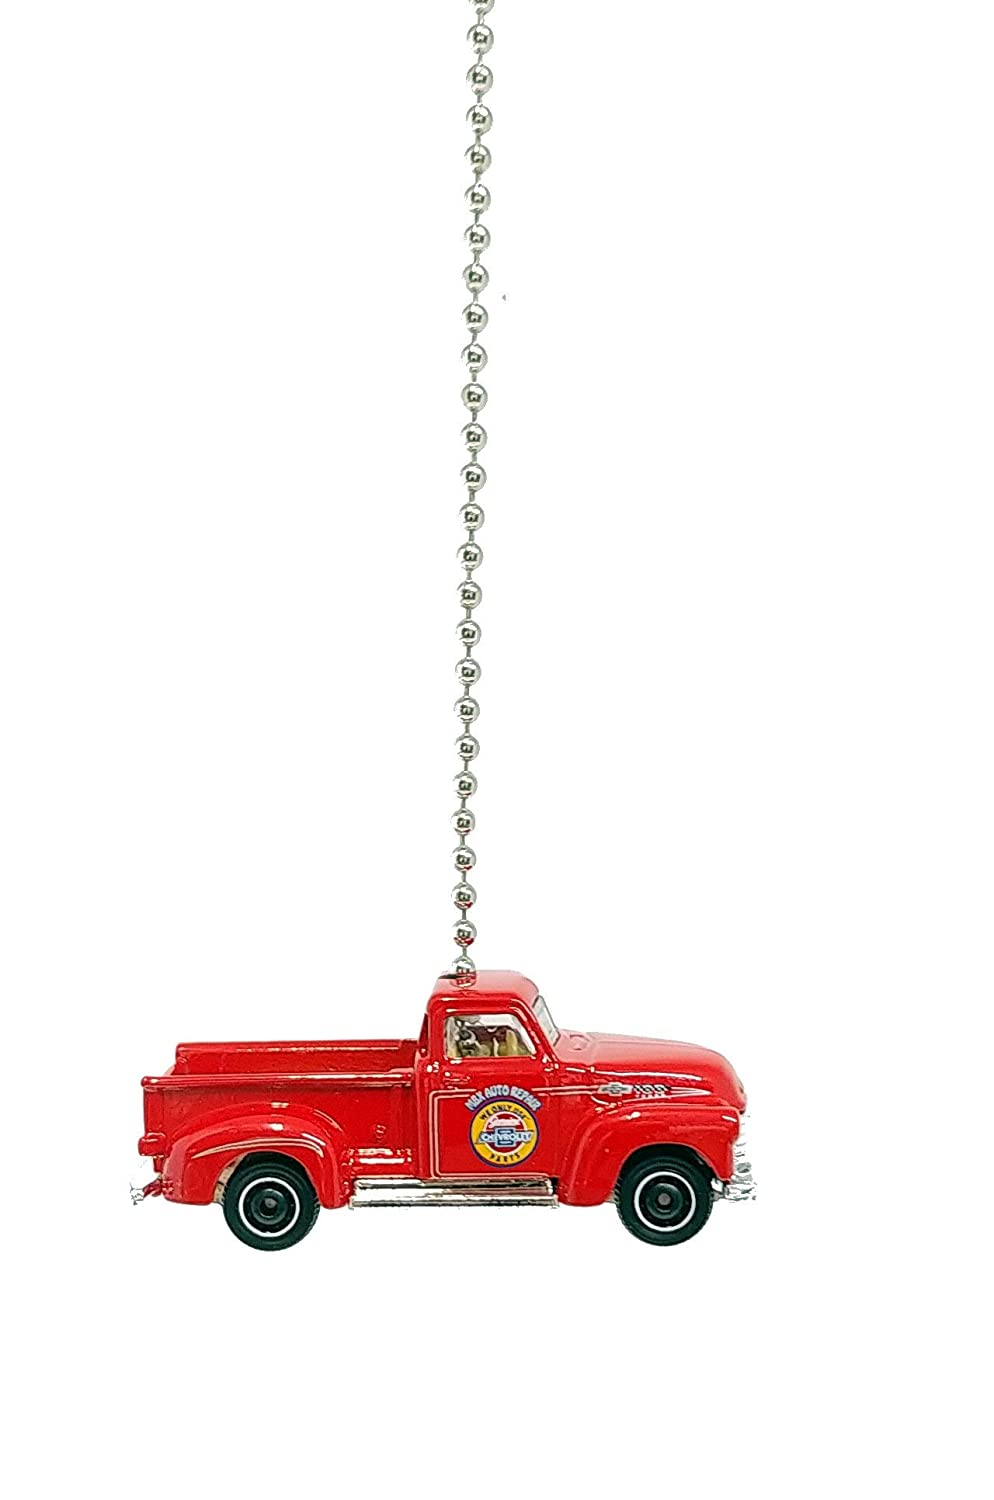 Chevy Truck Diecast Ceiling Fan LIght Pull Chain Ornament 1962 Chevy Truck Black Purple